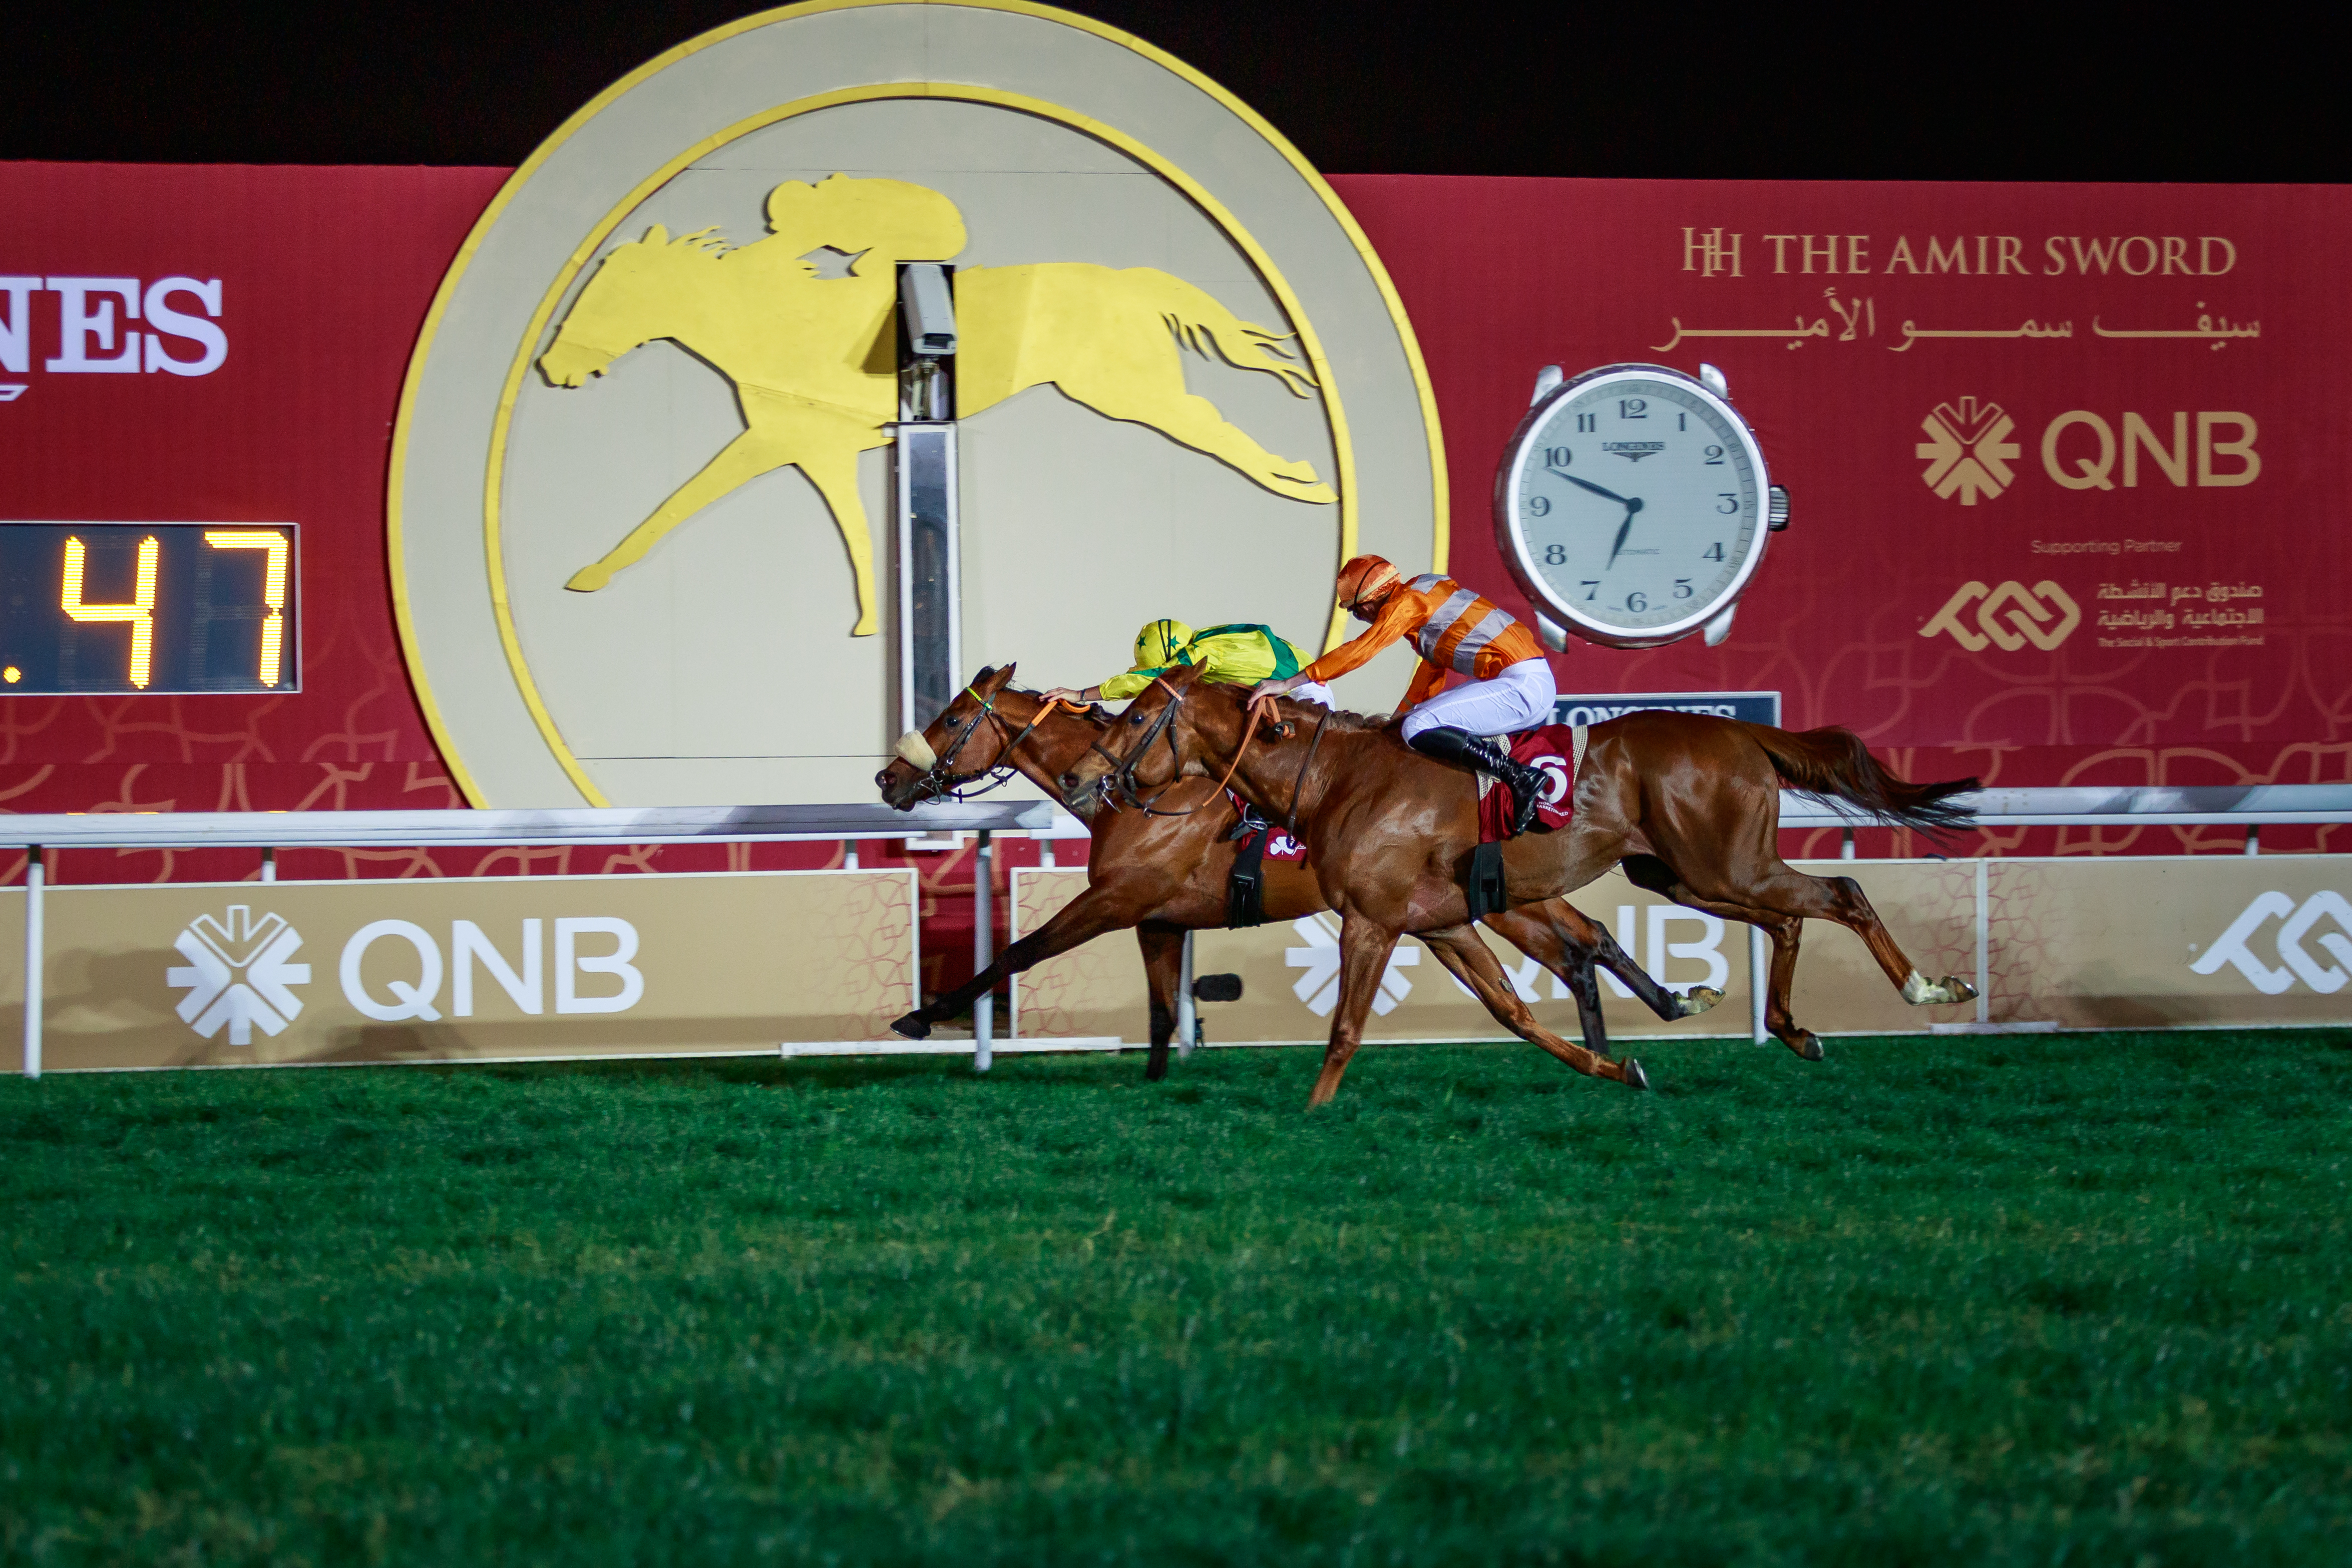 IRISH THOROUGHBRED MARKETING CUP (Gr2 local) - Les Marseillais dominent à Doha